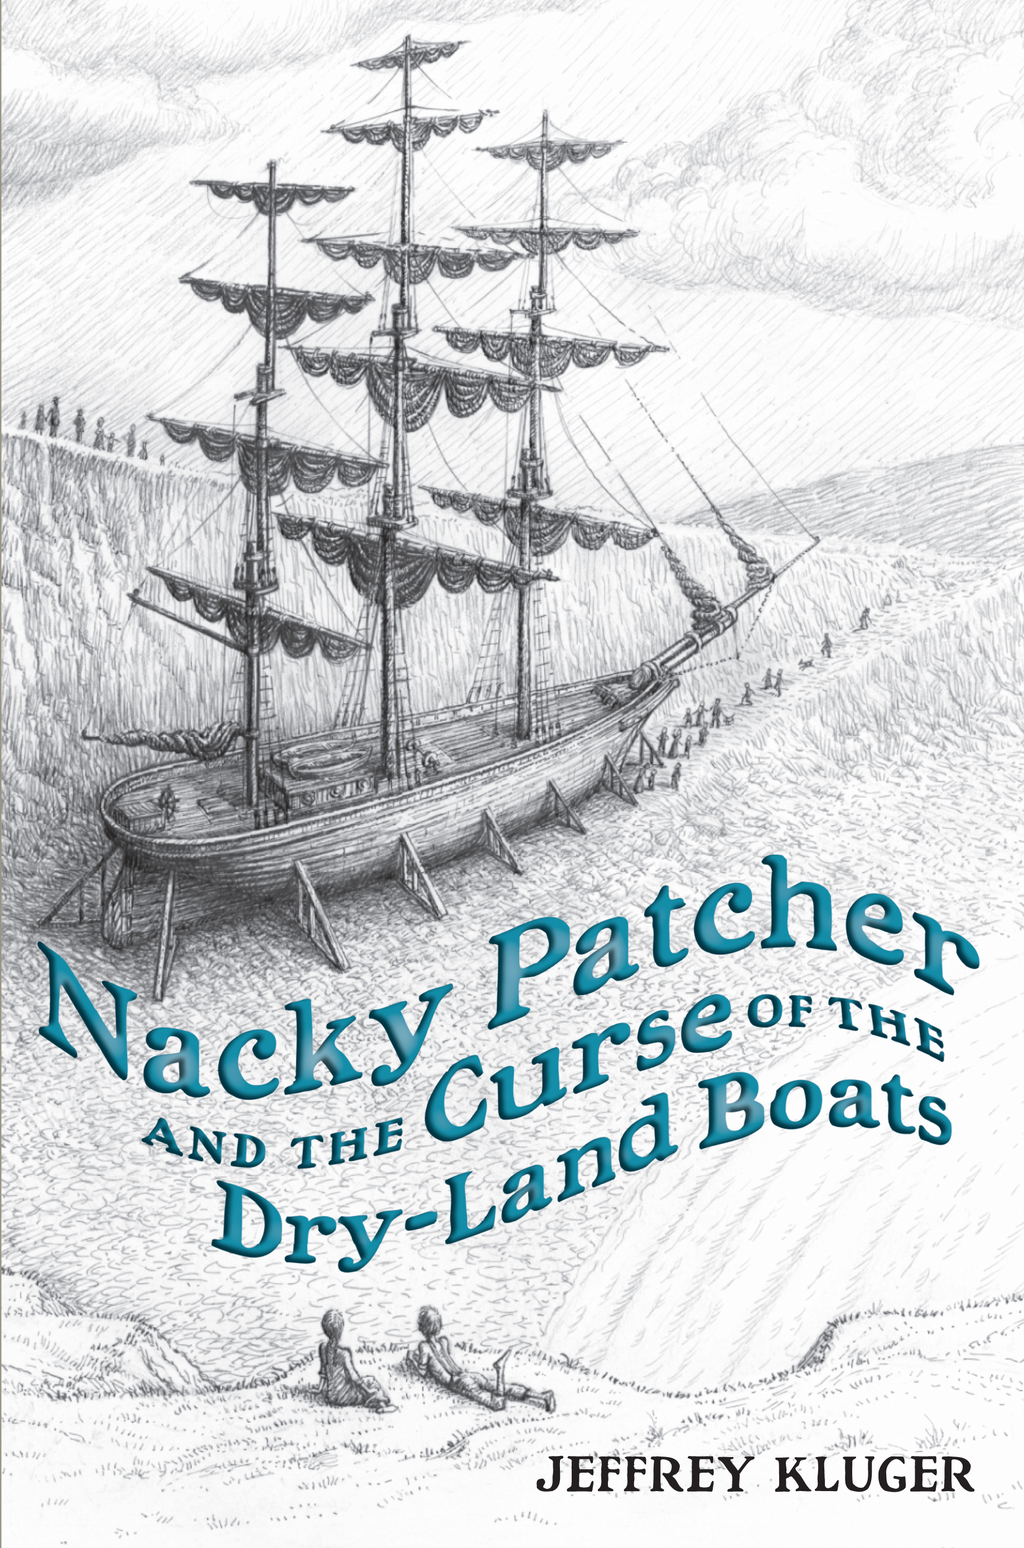 Nacky Patcher & the Curse of the Dry-Land Boats